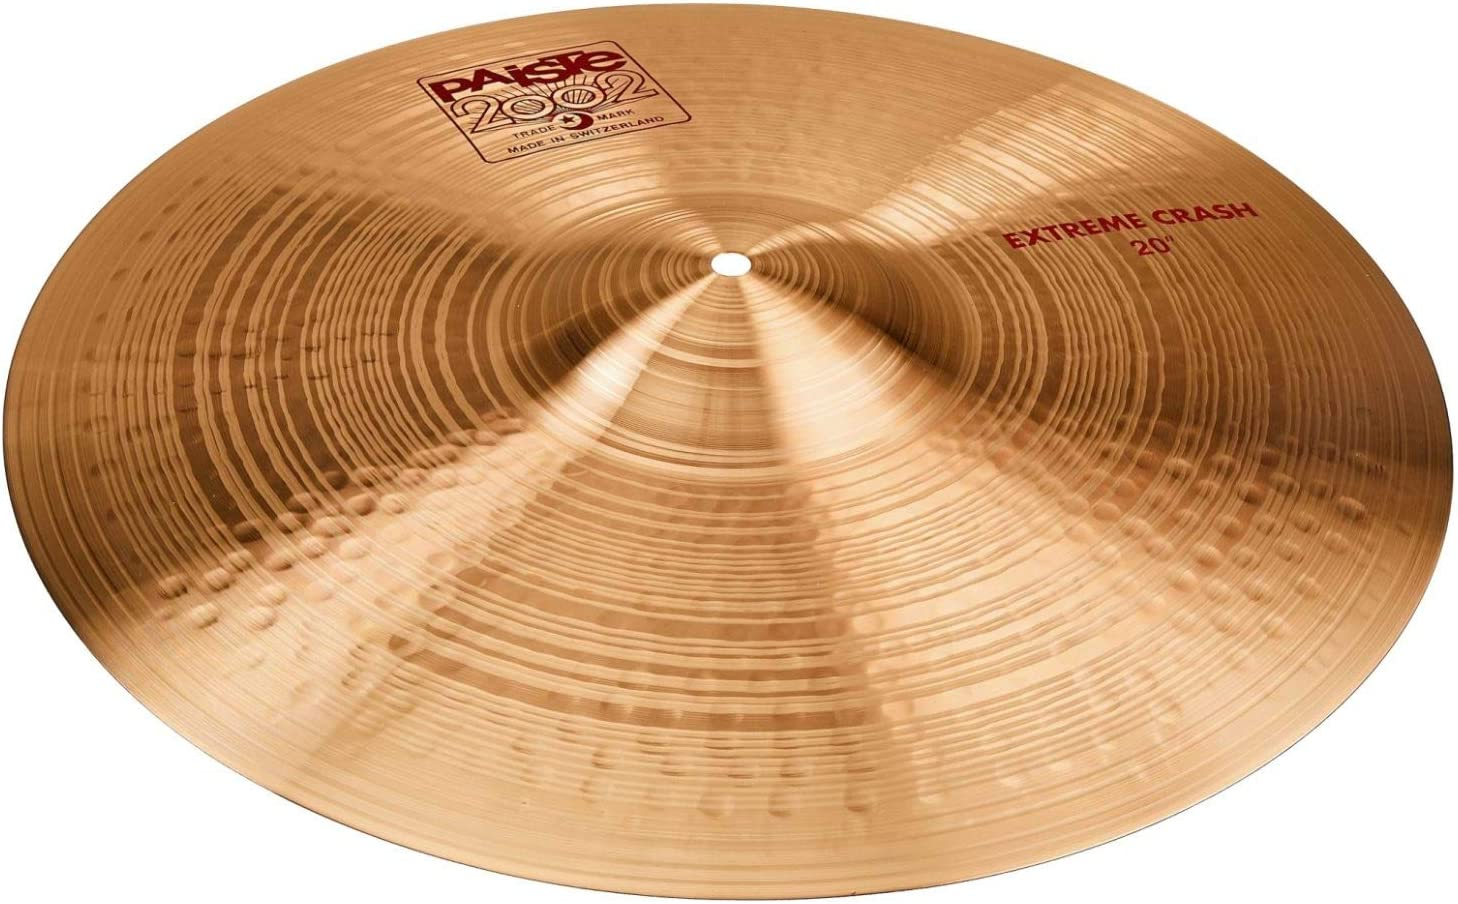 Paiste 20 Inches 2002 Extreme Manufacturer regenerated product Cymbal Crash Selling rankings